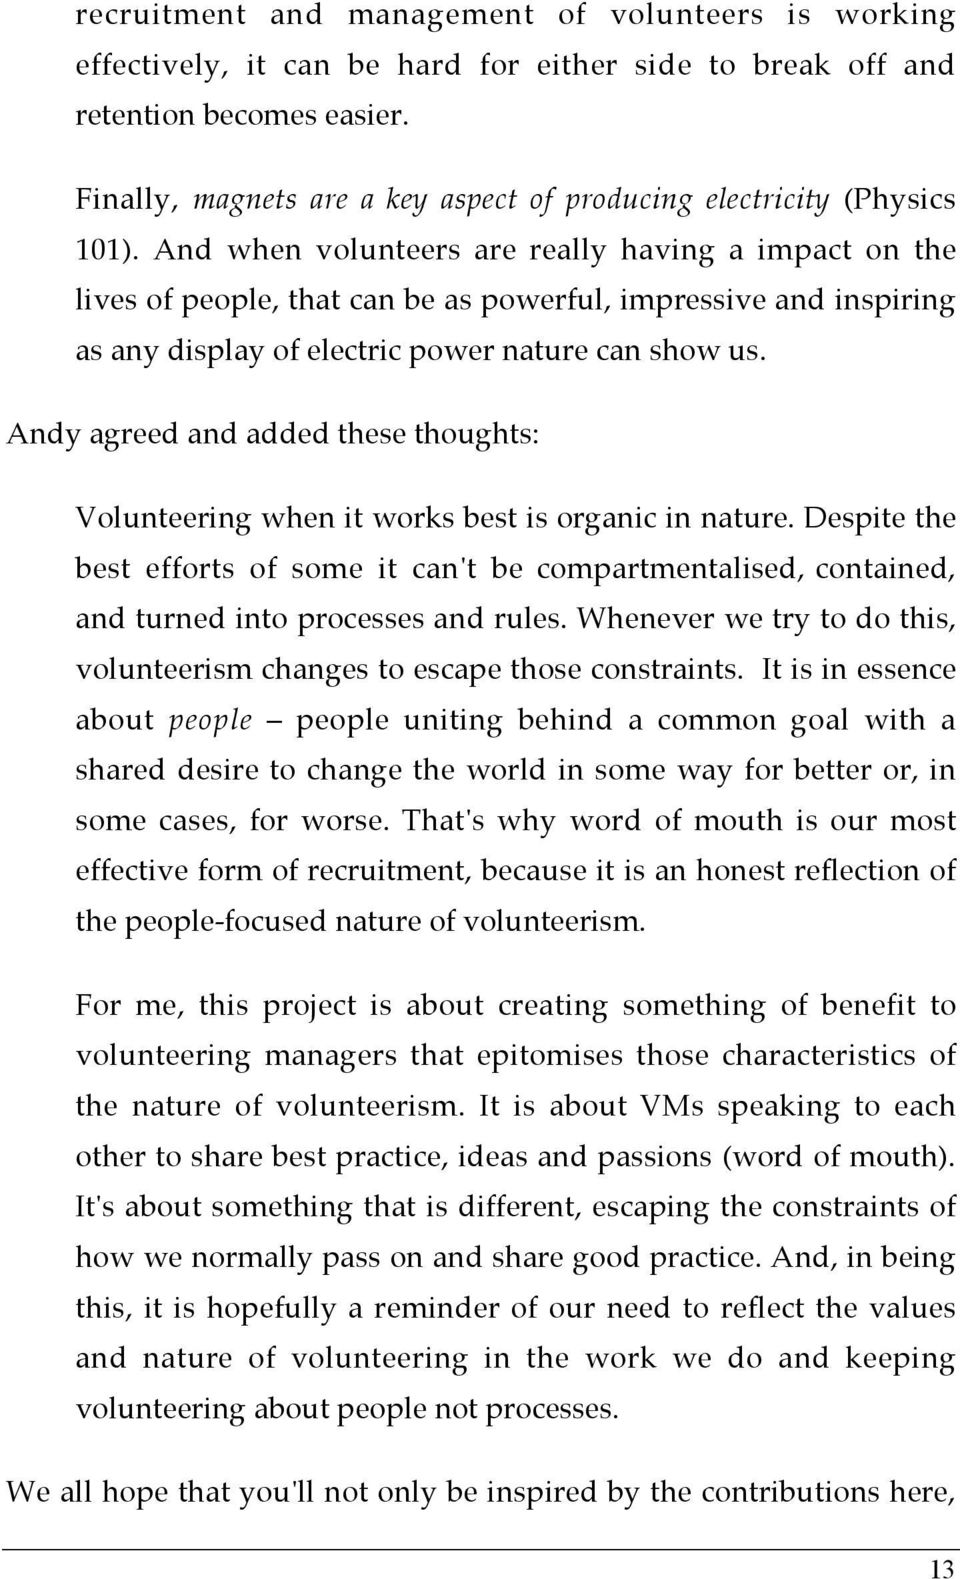 And when volunteers are really having a impact on the lives of people, that can be as powerful, impressive and inspiring as any display of electric power nature can show us.